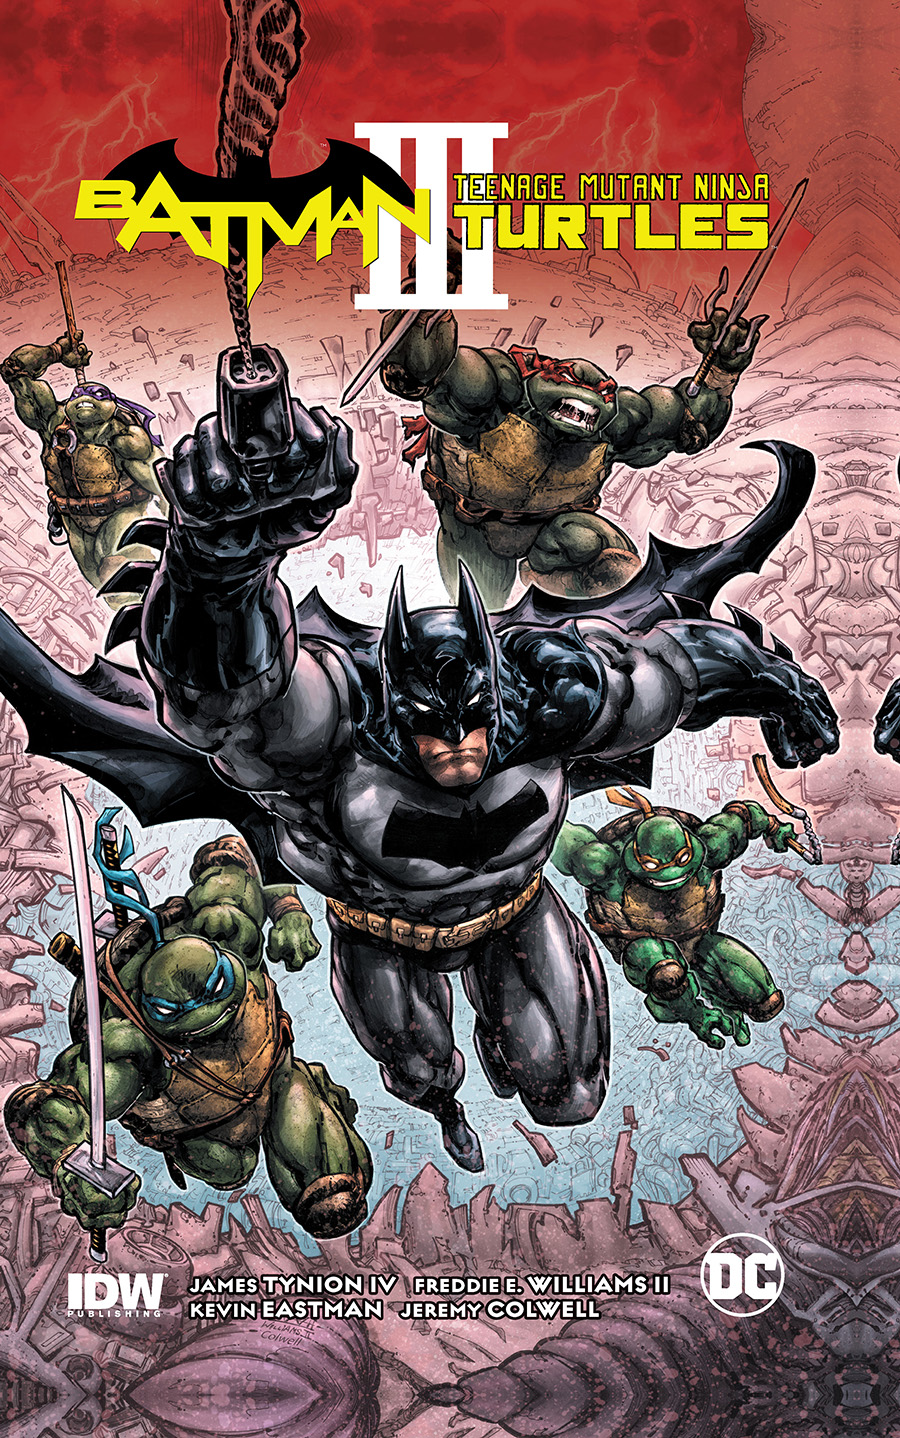 BATMAN TEENAGE MUTANT NINJA TURTLES III TP